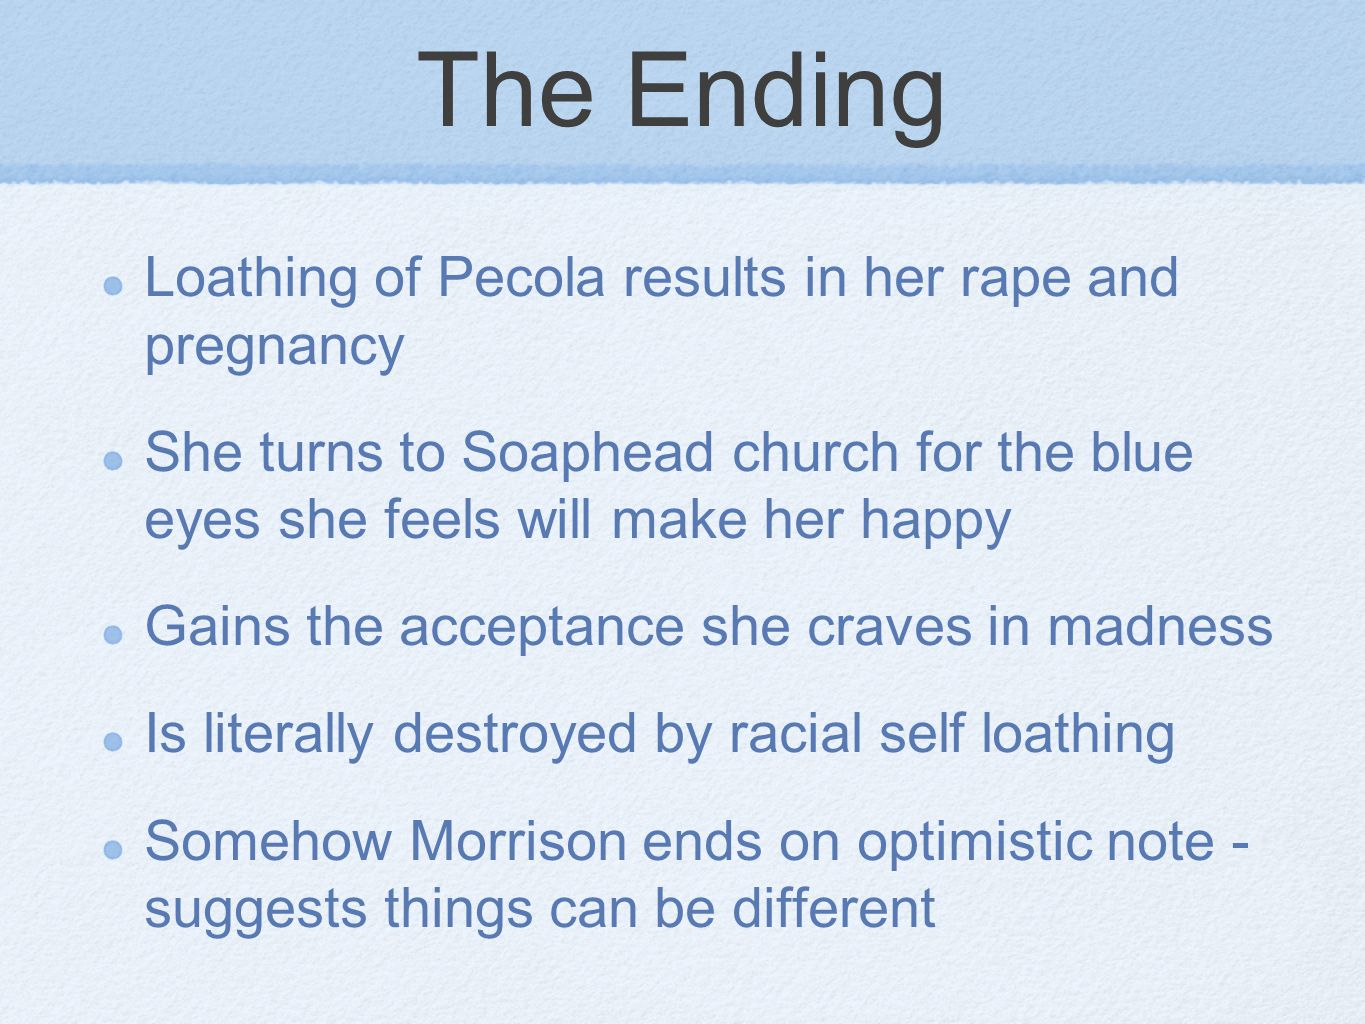 The Ending Loathing of Pecola results in her rape and pregnancy She turns to Soaphead church for the blue eyes she feels will make her happy Gains the acceptance she craves in madness Is literally destroyed by racial self loathing Somehow Morrison ends on optimistic note - suggests things can be different